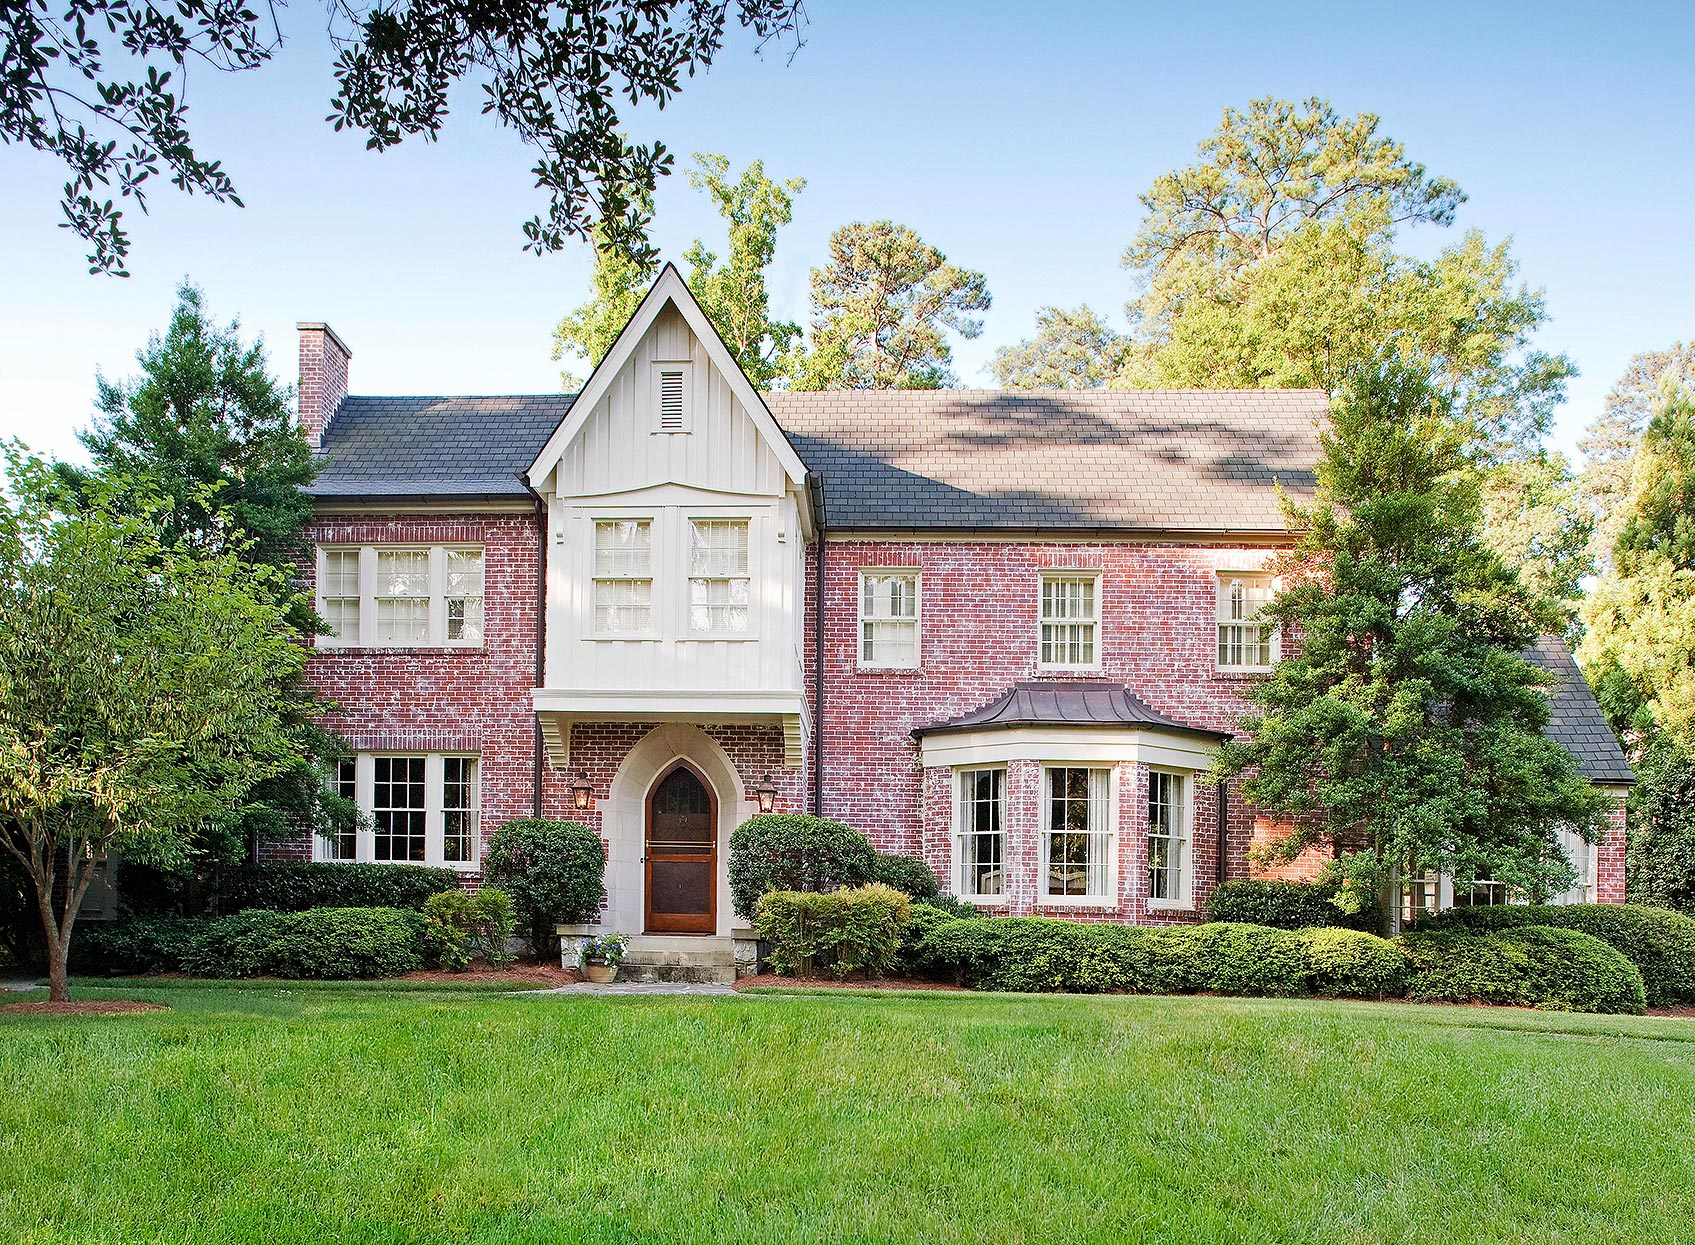 tudor- and english country-inspired brick home